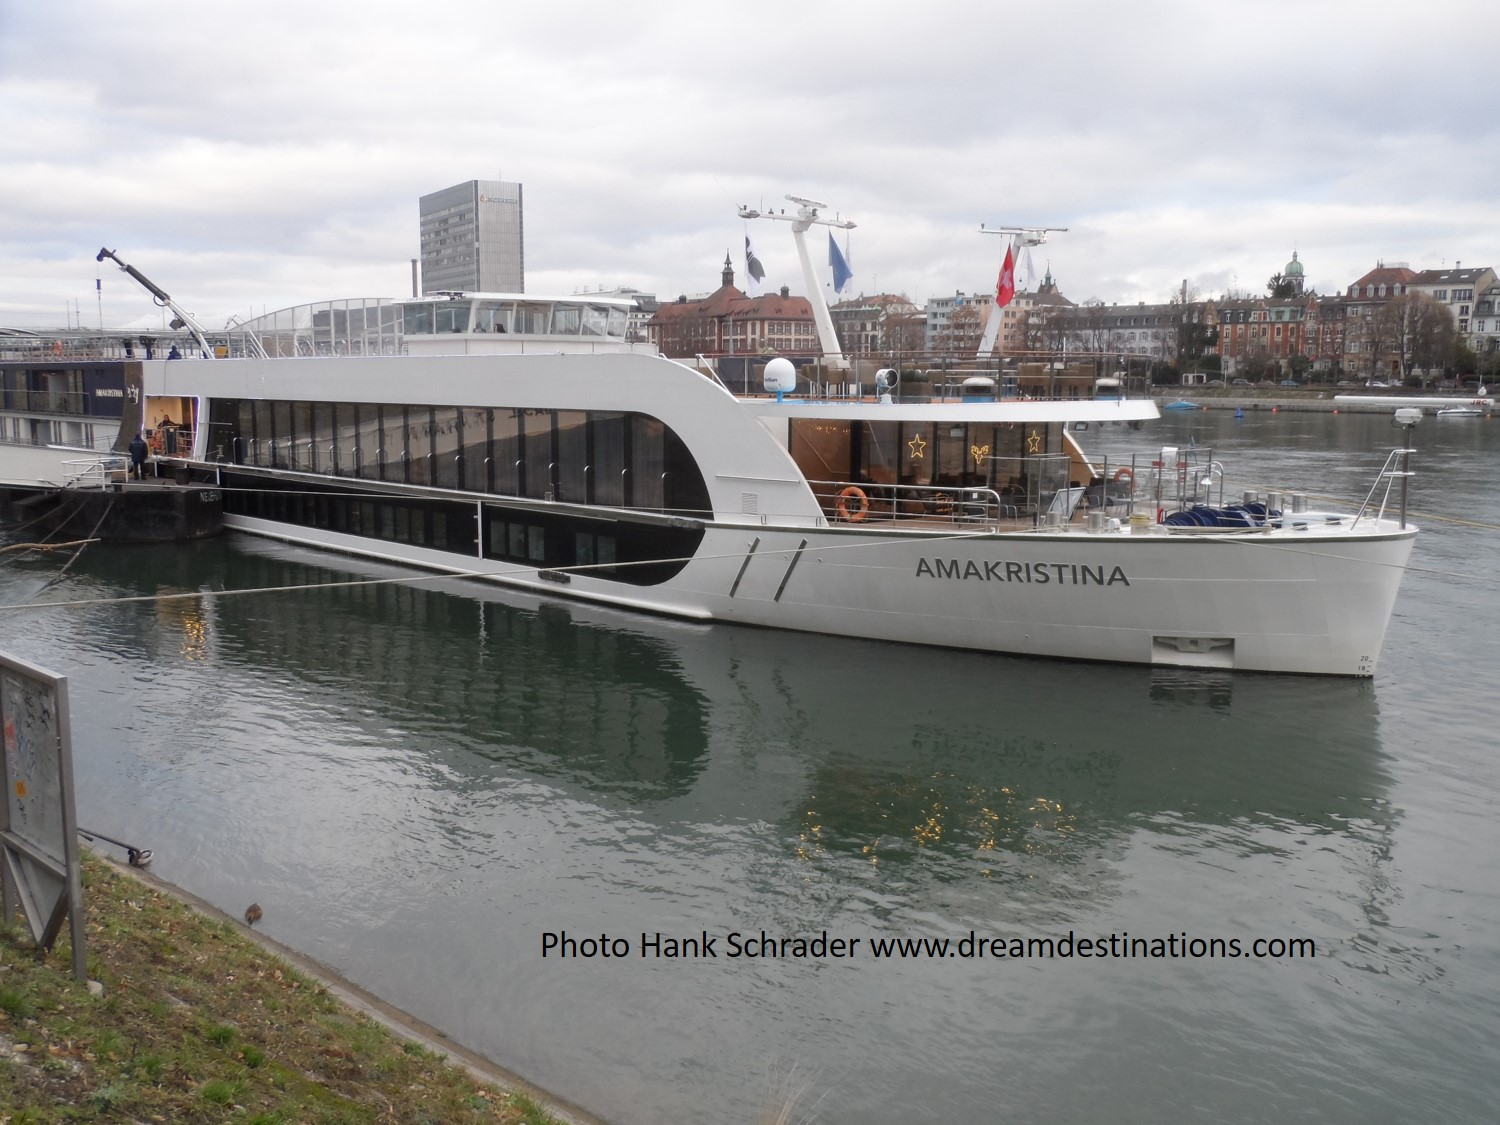 The AmaKristina in port at Basel, Switzerland